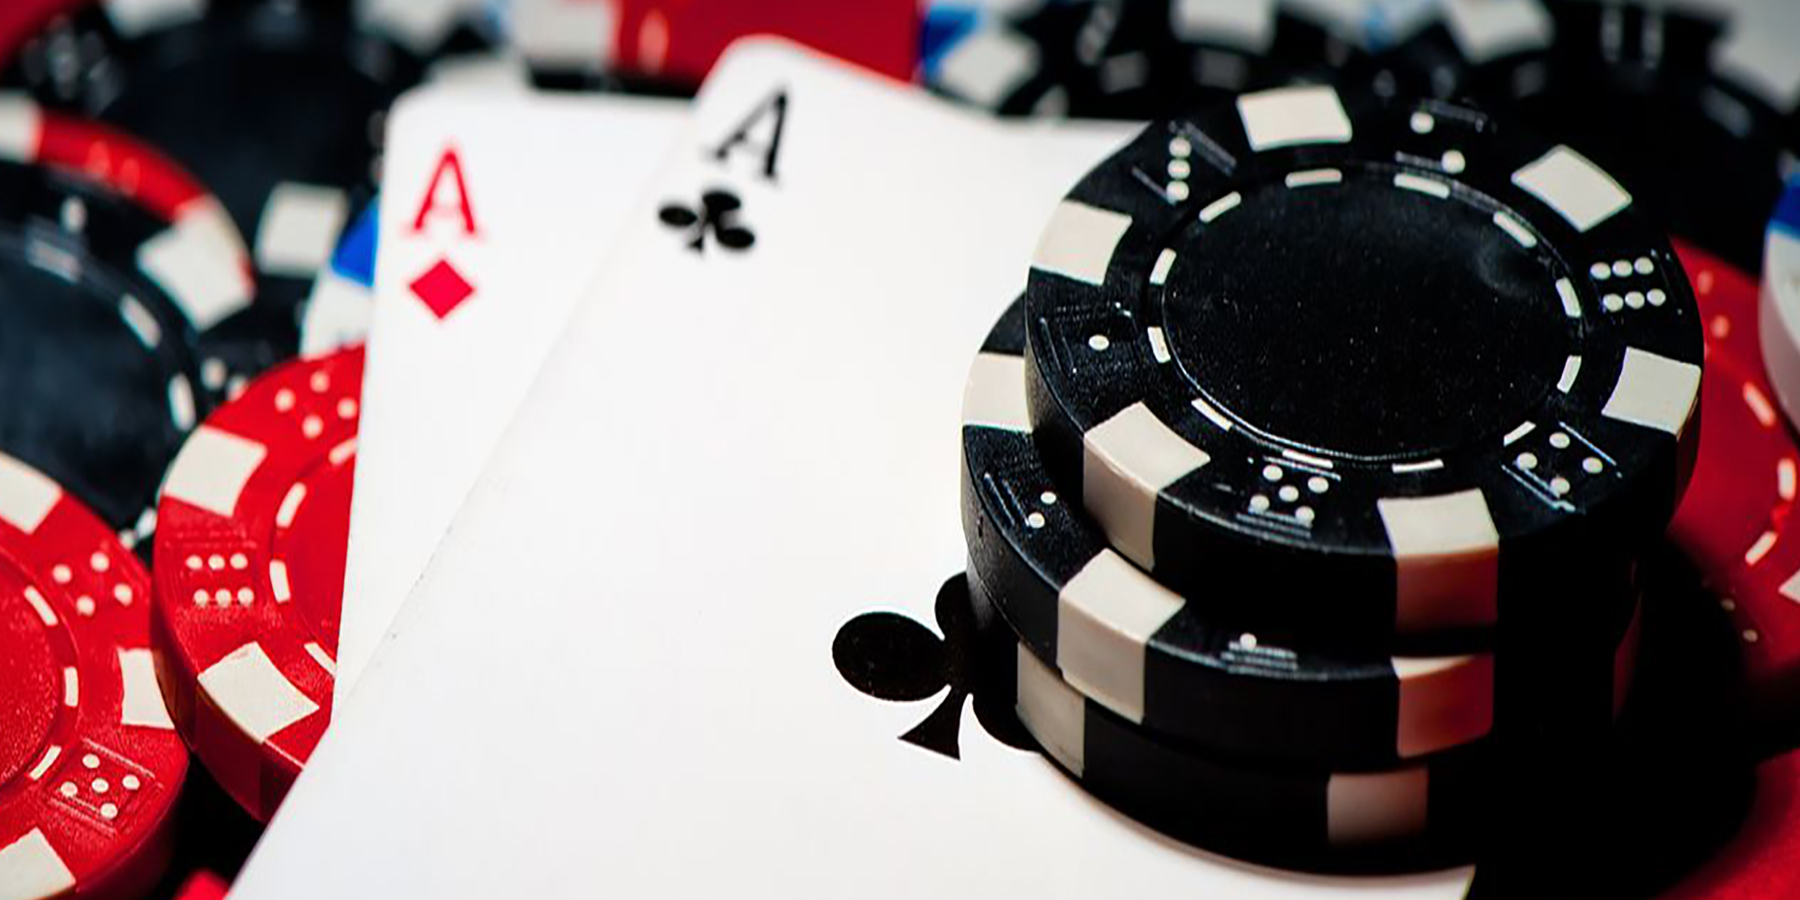 Enter The World Of Online Casino